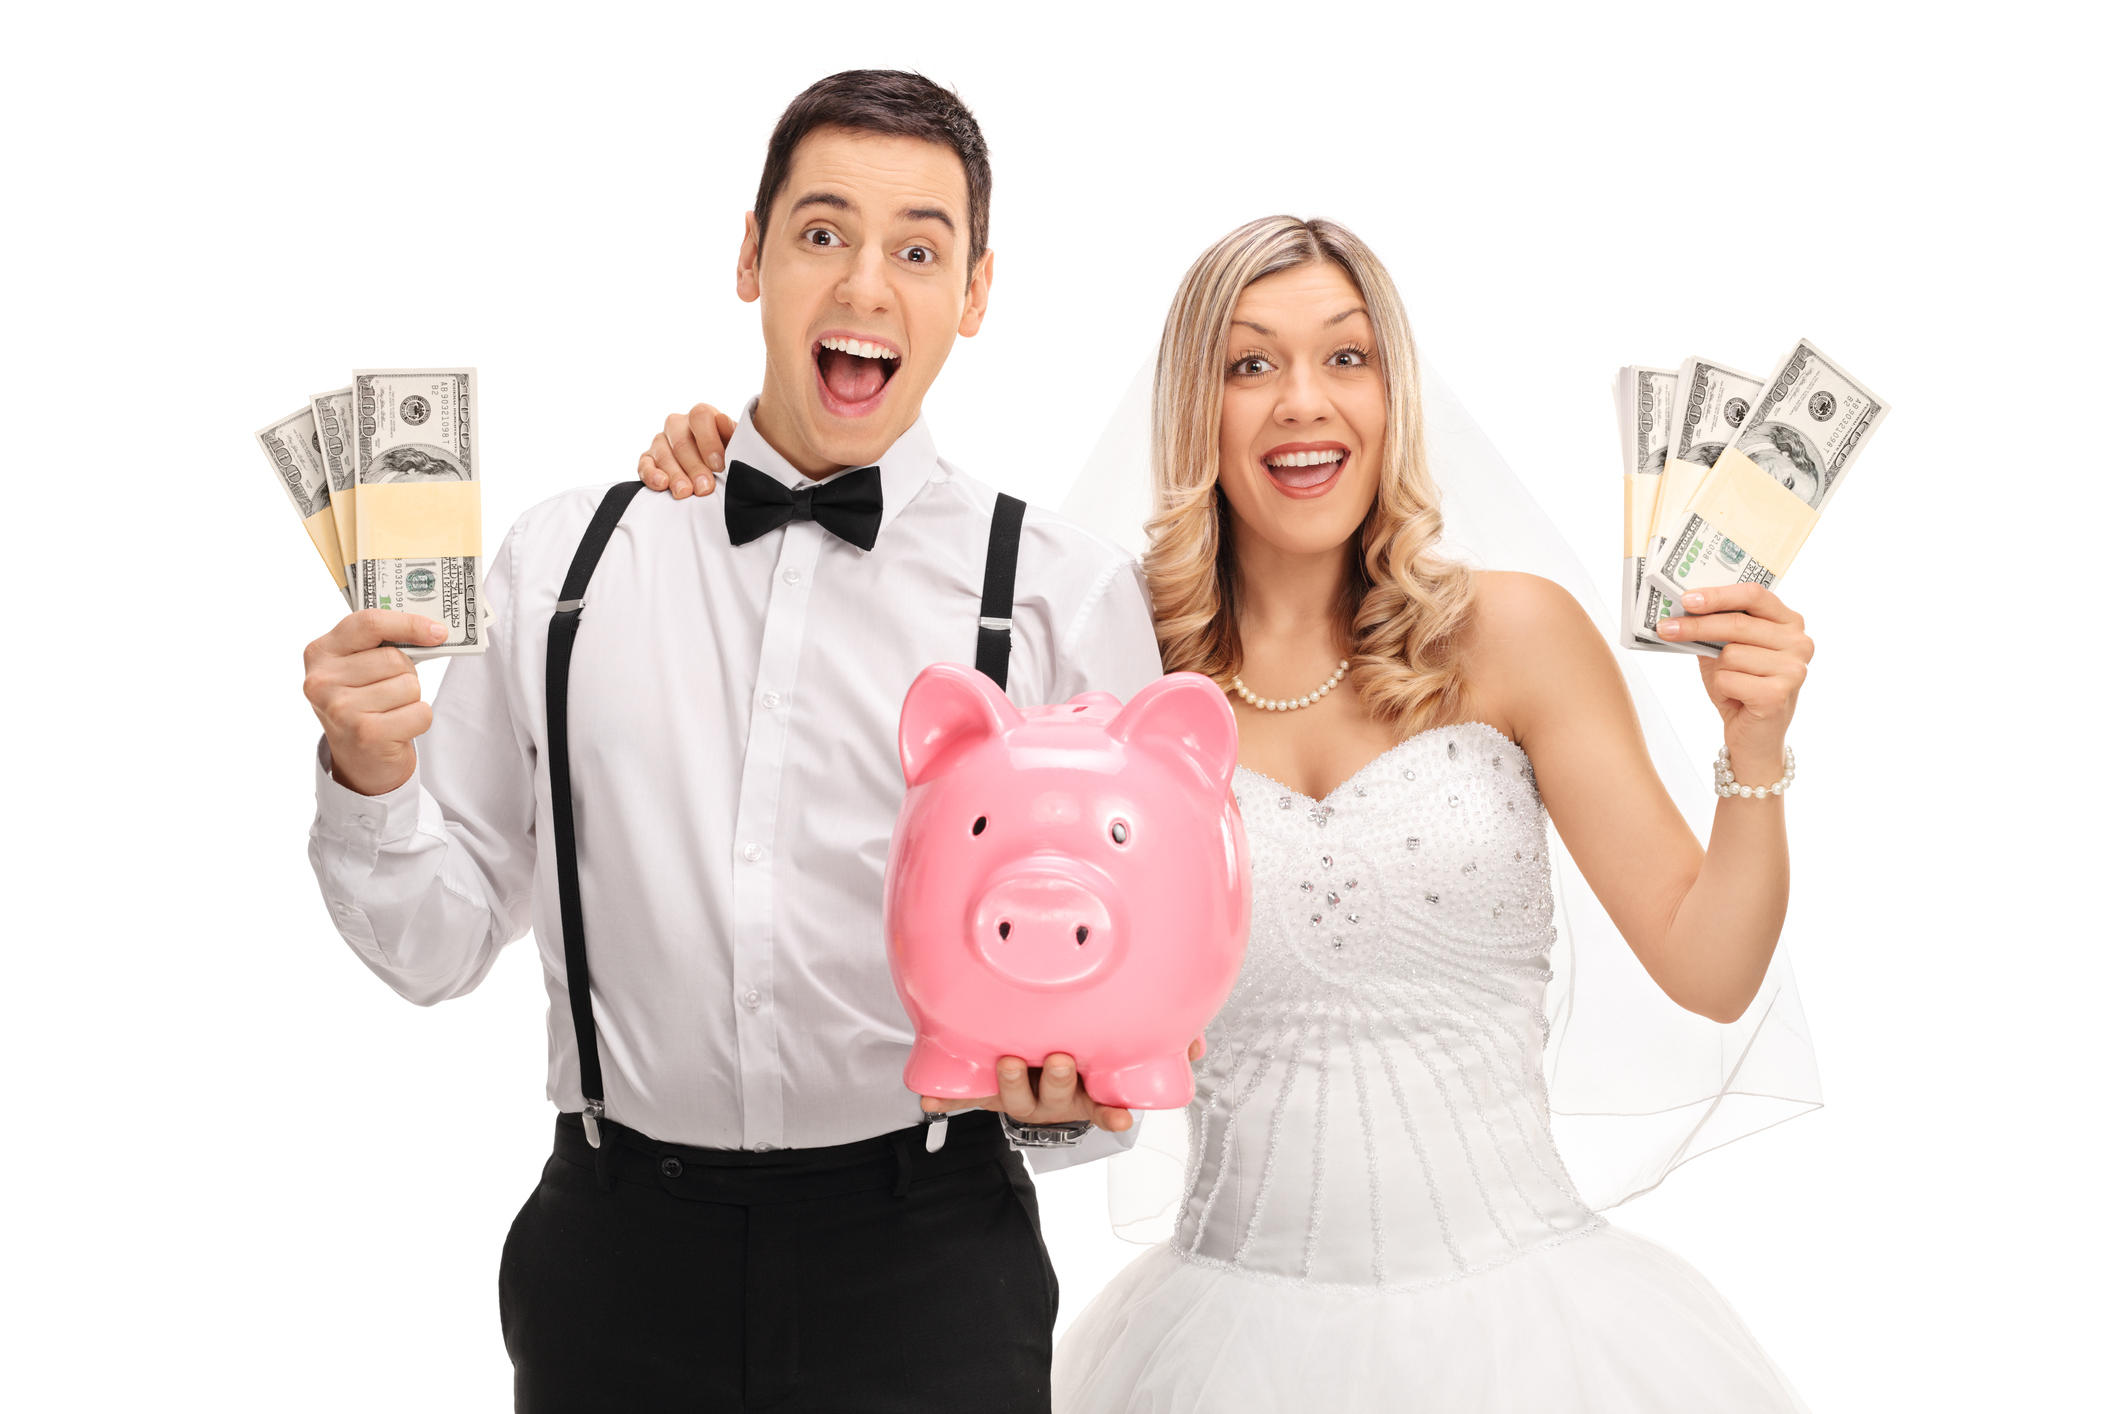 Happy newlywed couple with a piggybank and money bundles isolated on white background